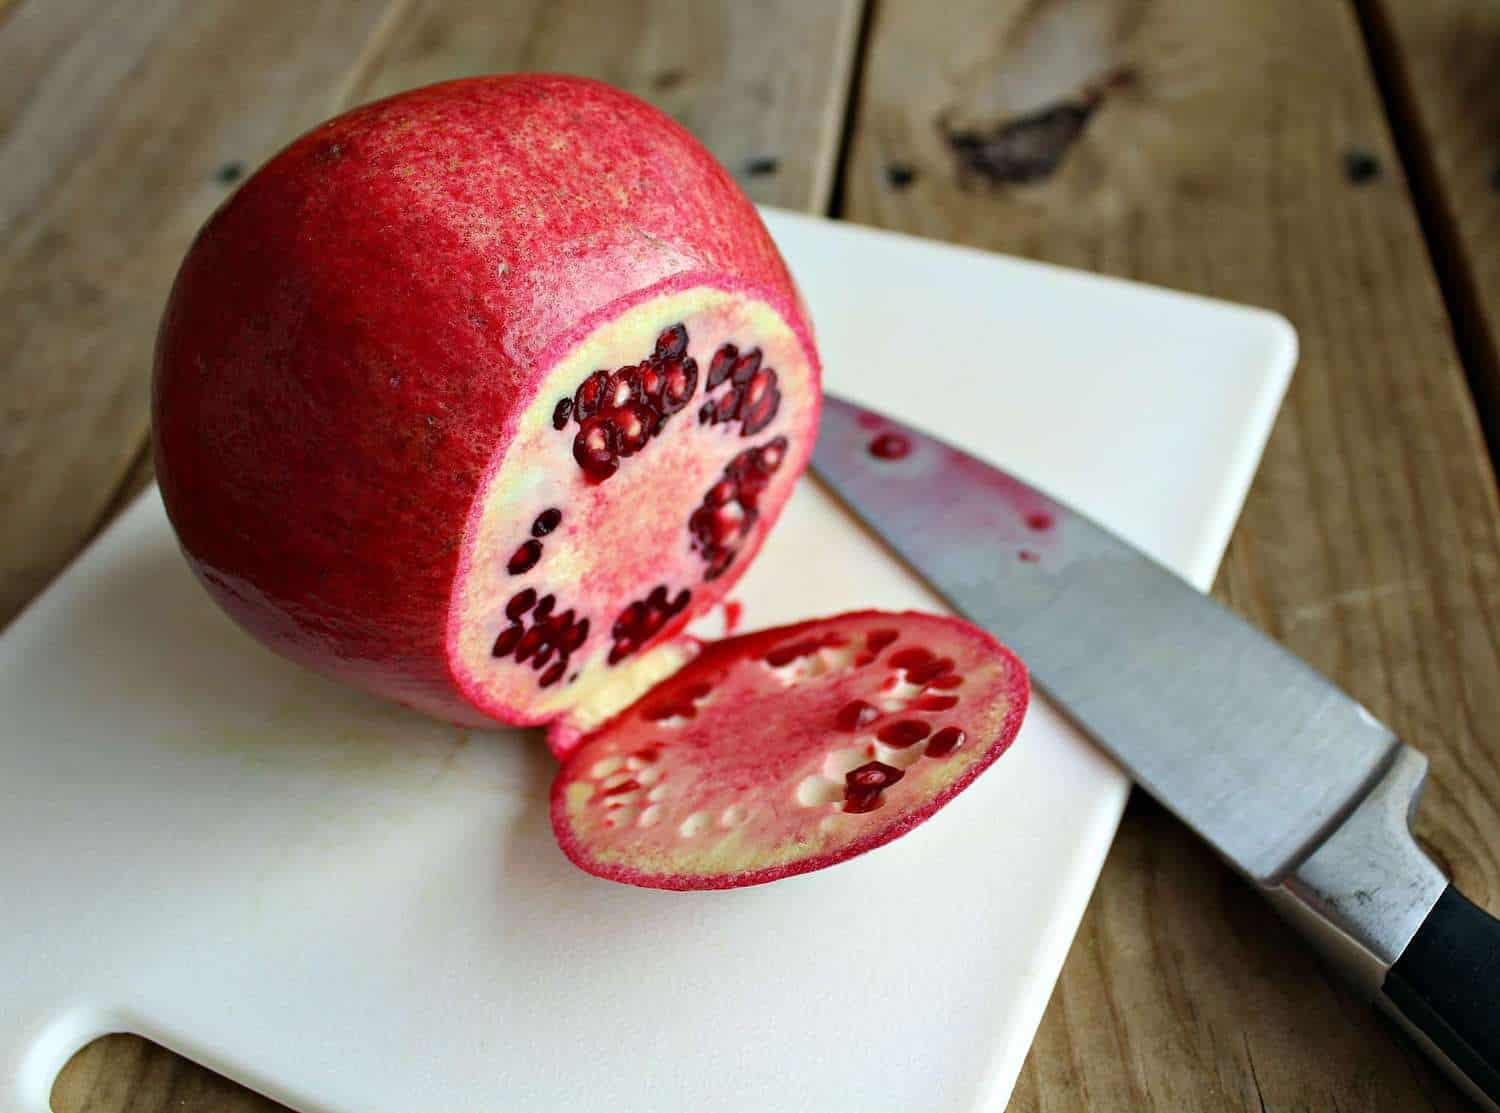 Pomegranate with top cut off.